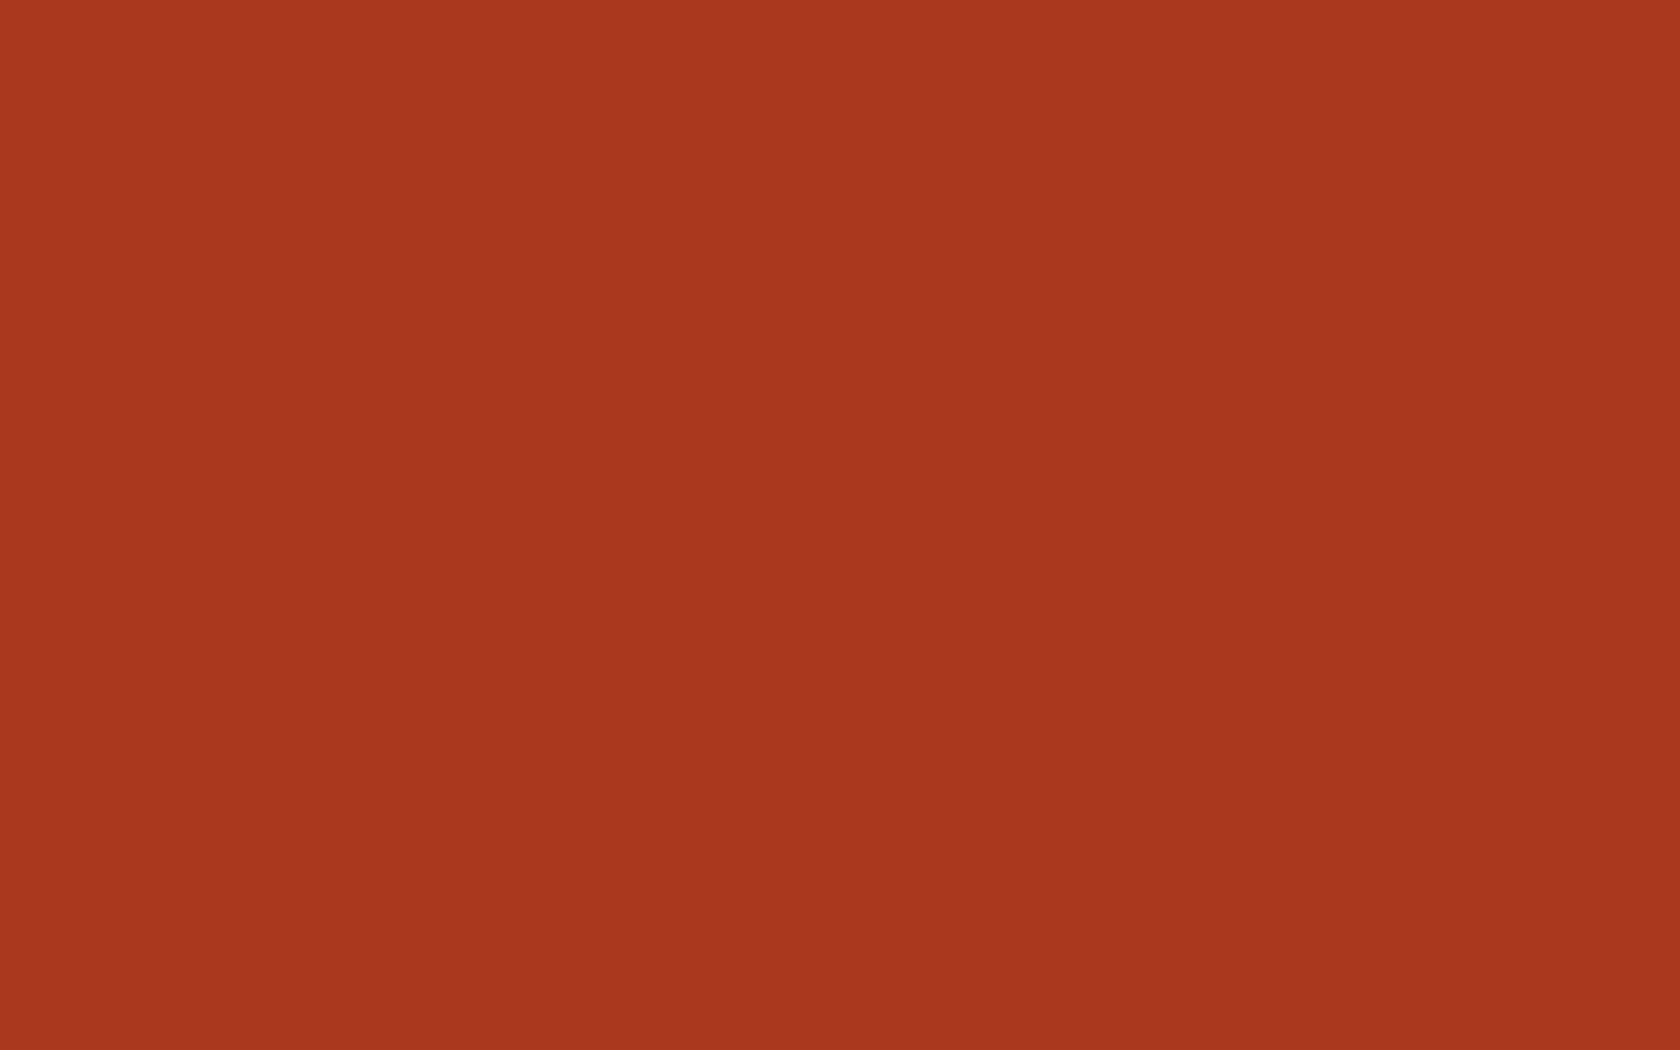 1680x1050 Chinese Red Solid Color Background